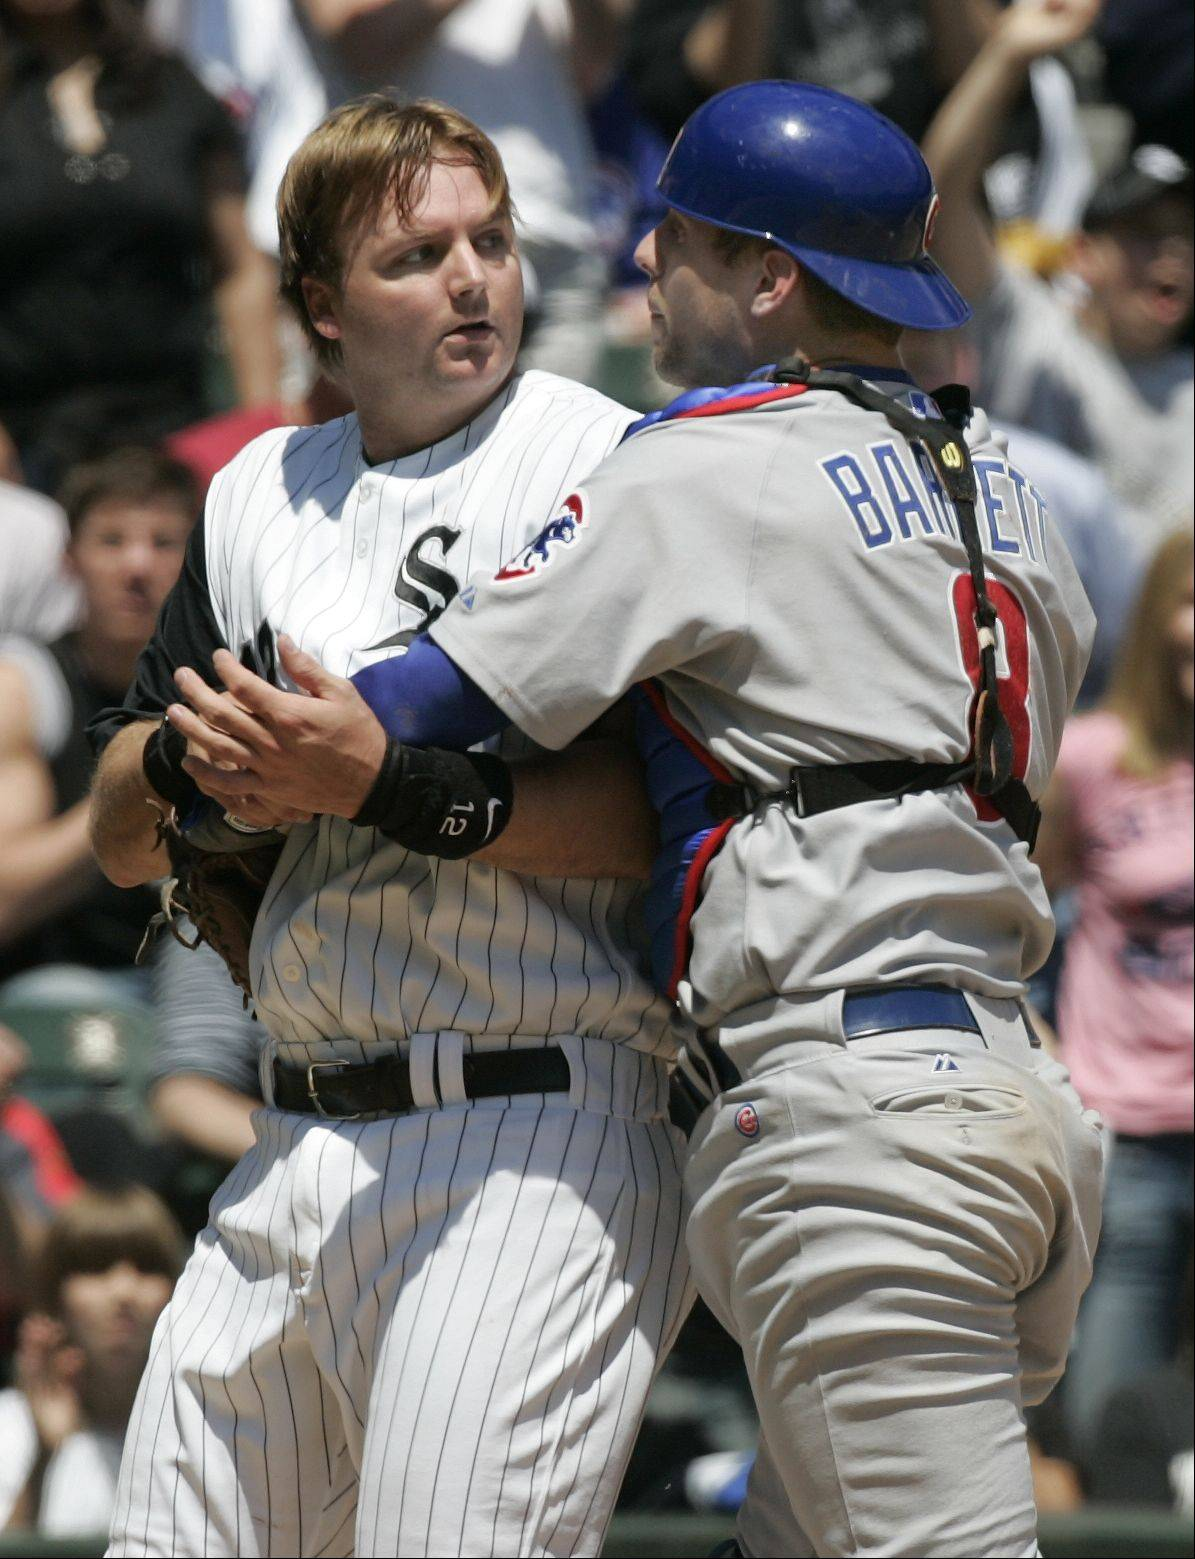 Sox A.J. Pierzynski is grabbed by Cubs Catcher Michael Barrett in the 2nd inning, starting the fight, Game Two Chicago White Sox Vs Chicago Cubs at U.S. Cellular Field in Chicago. May 20, 2006.